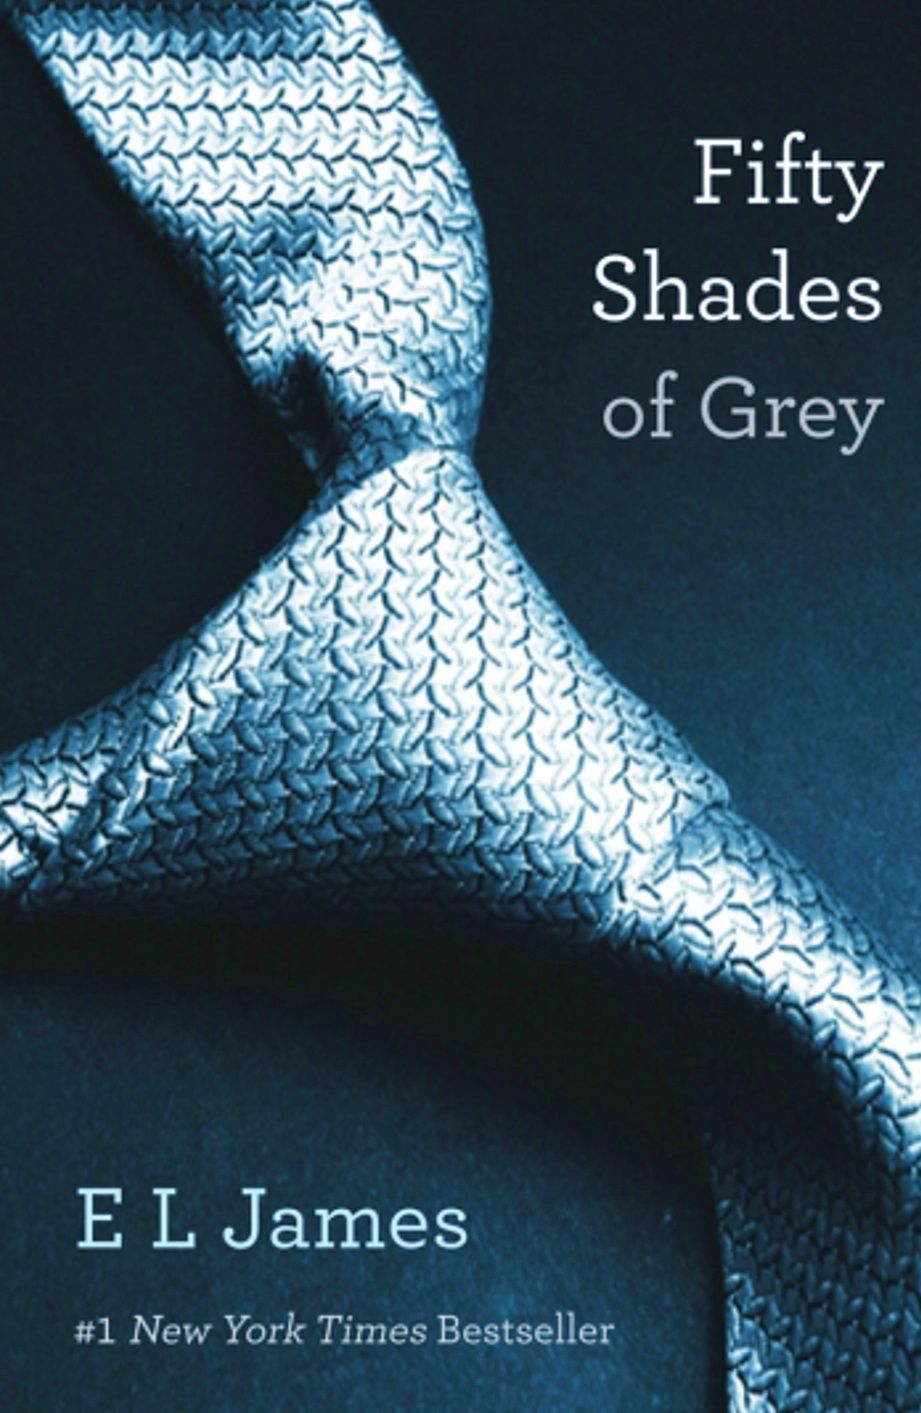 how to download 50 shades of grey for free